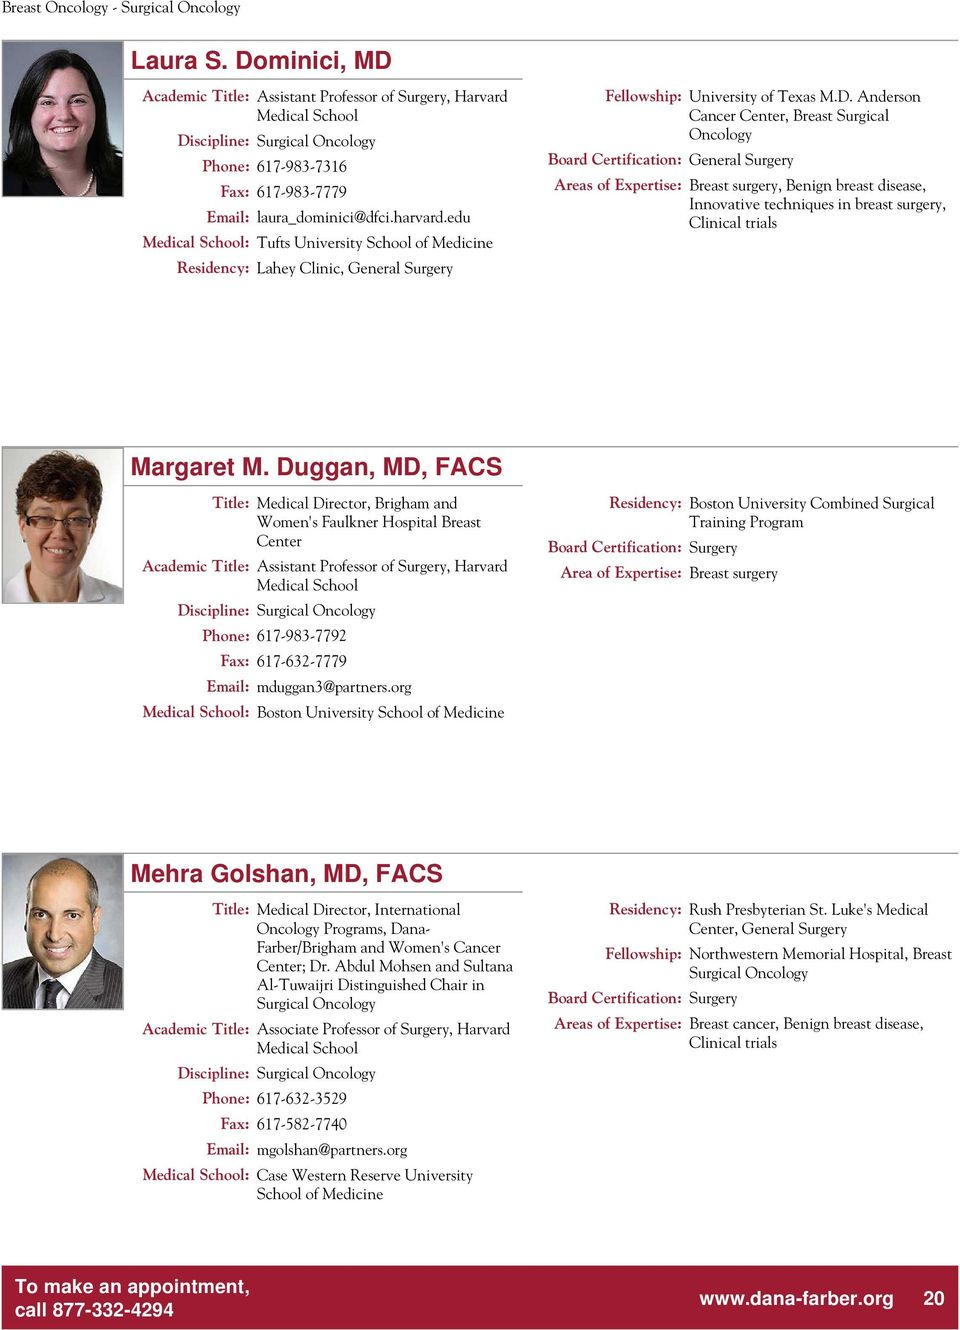 PHYSICIAN PROFILES  Dedicated to Discovery Committed to Care  - PDF